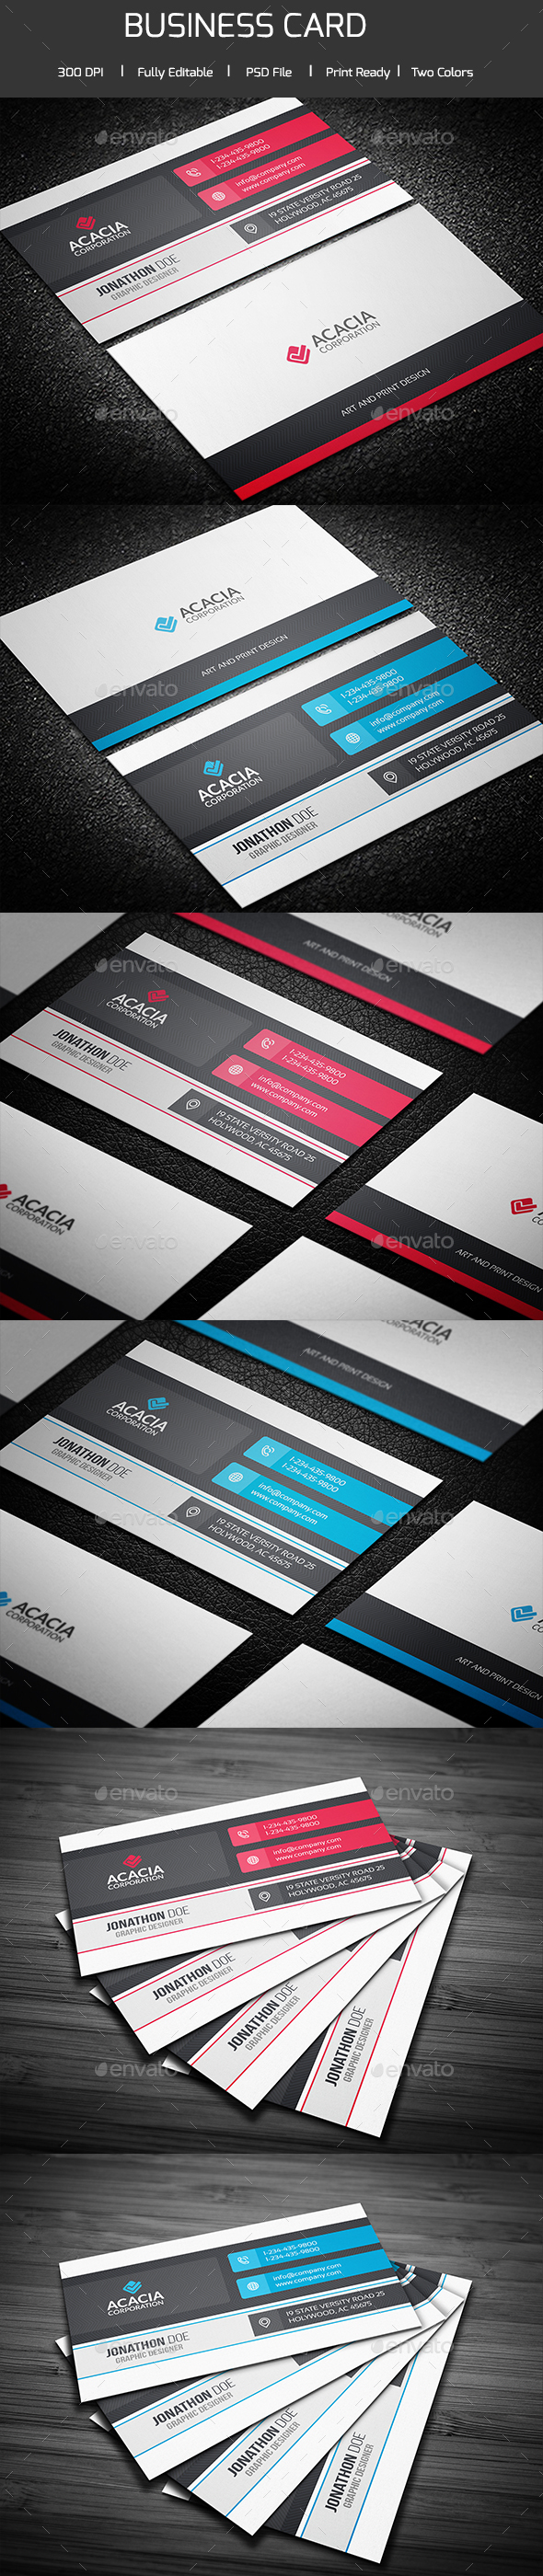 Kiron Business Card - Corporate Business Cards